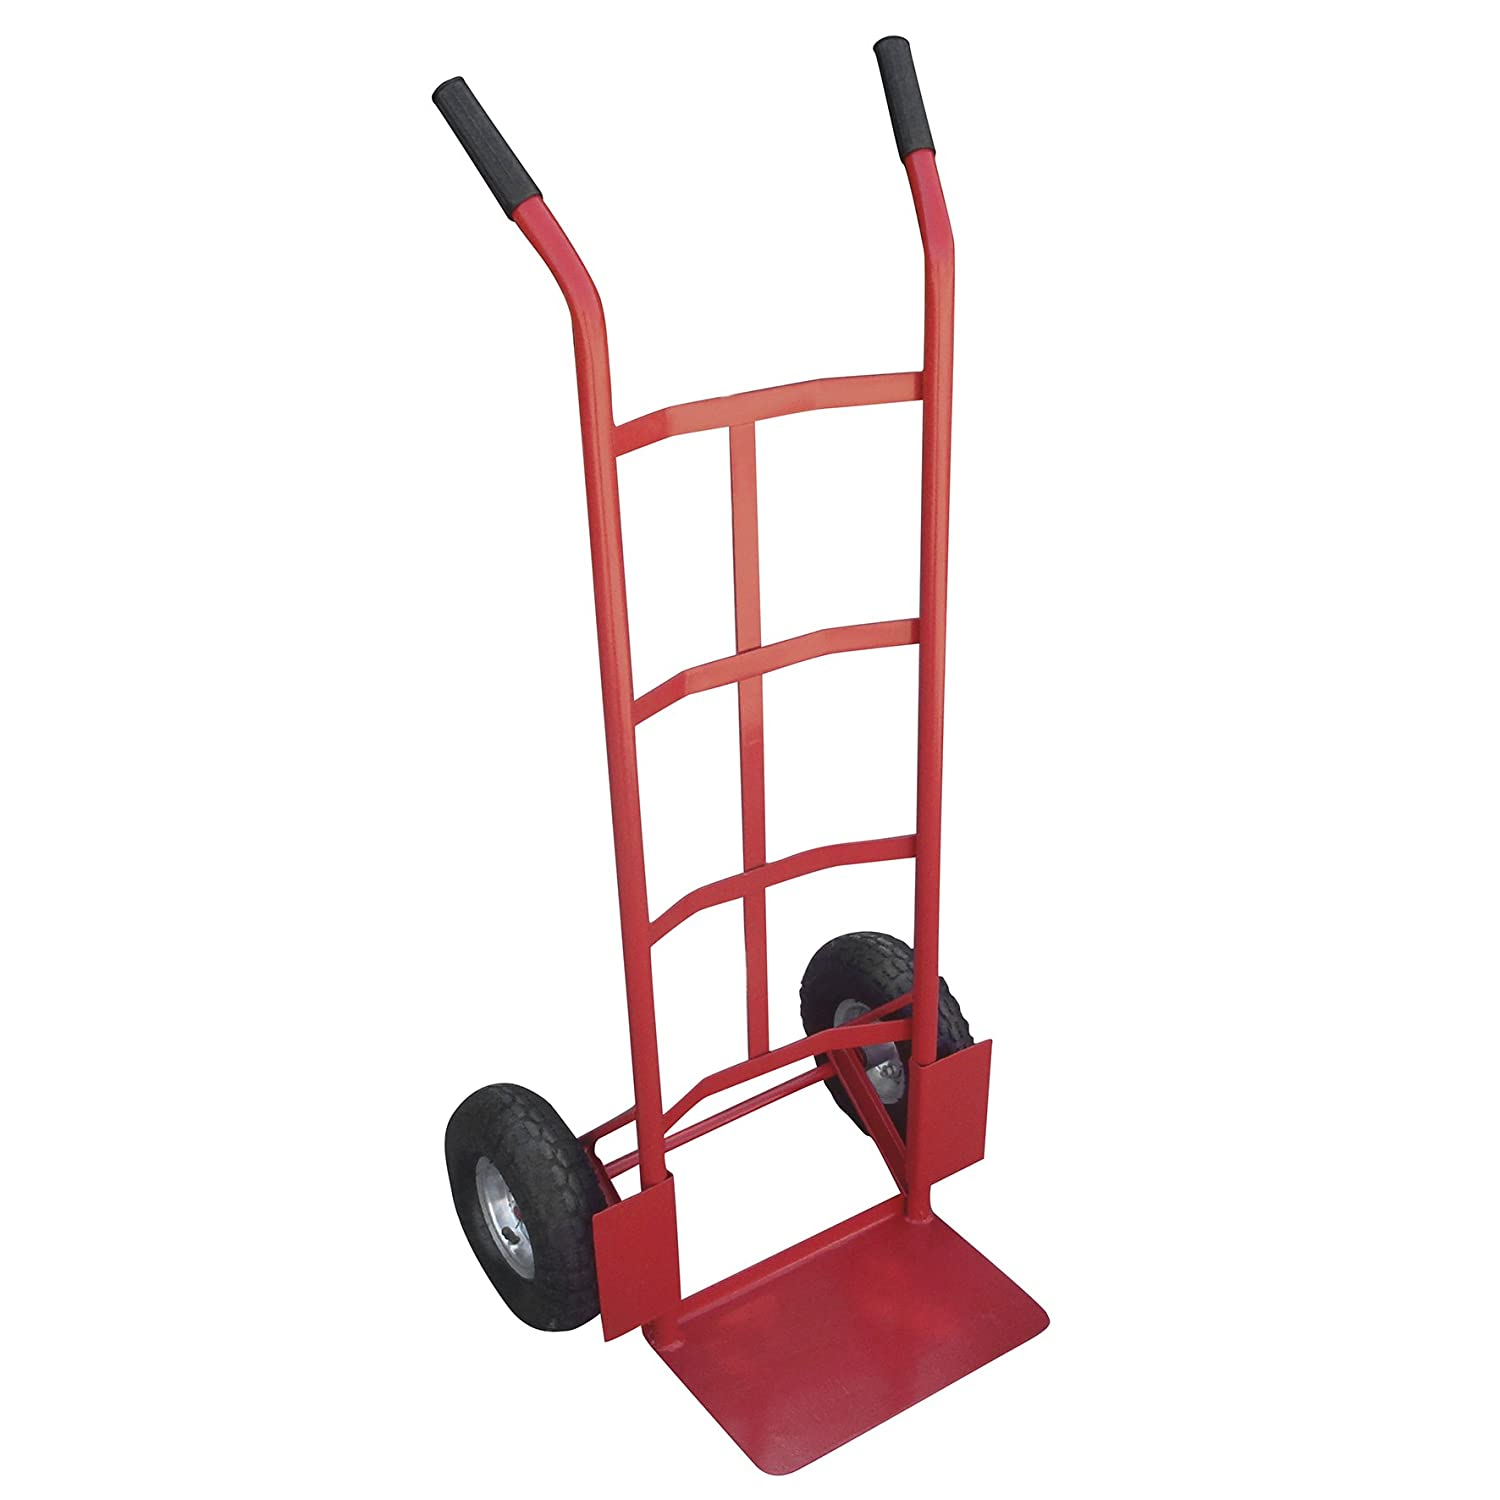 Cogex 63043 Sack trolley with pneumatic tyre wheels